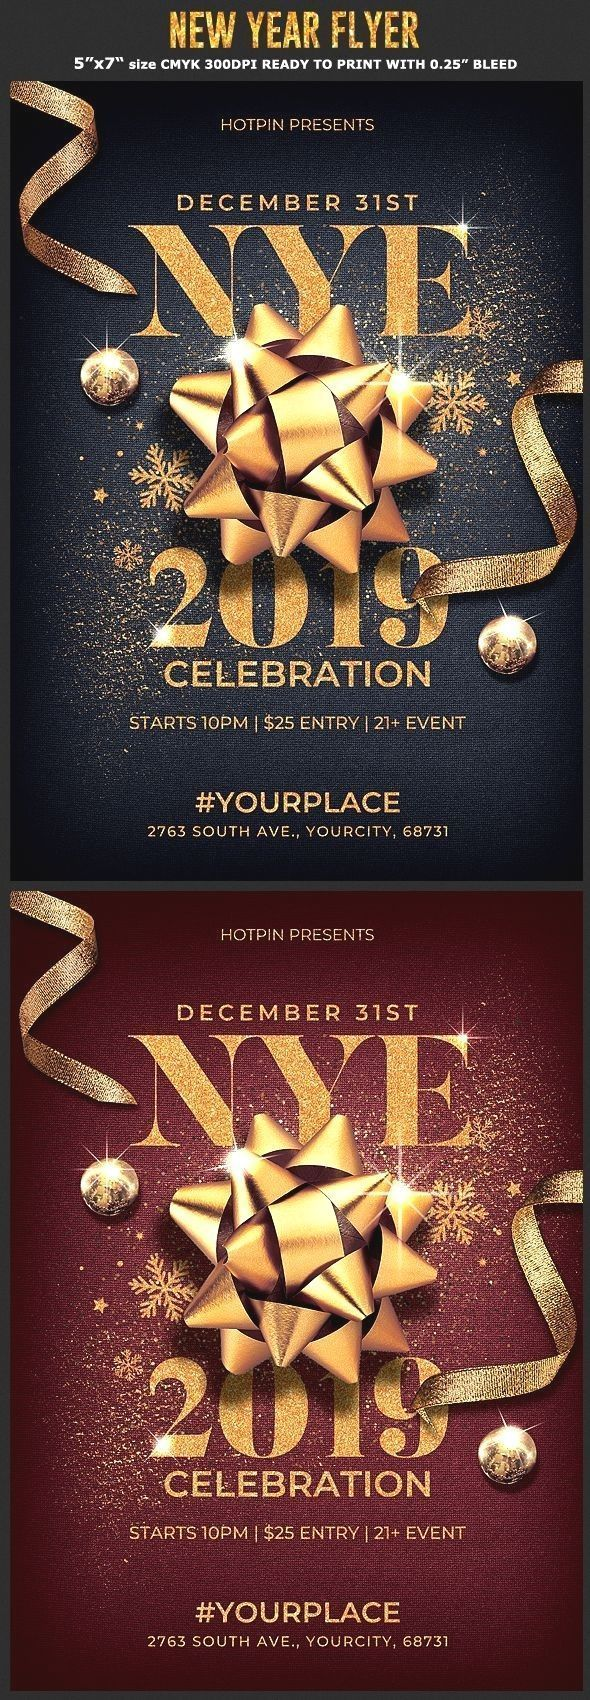 New Year Eve Flyer Invitation New Year Flyer Invitation